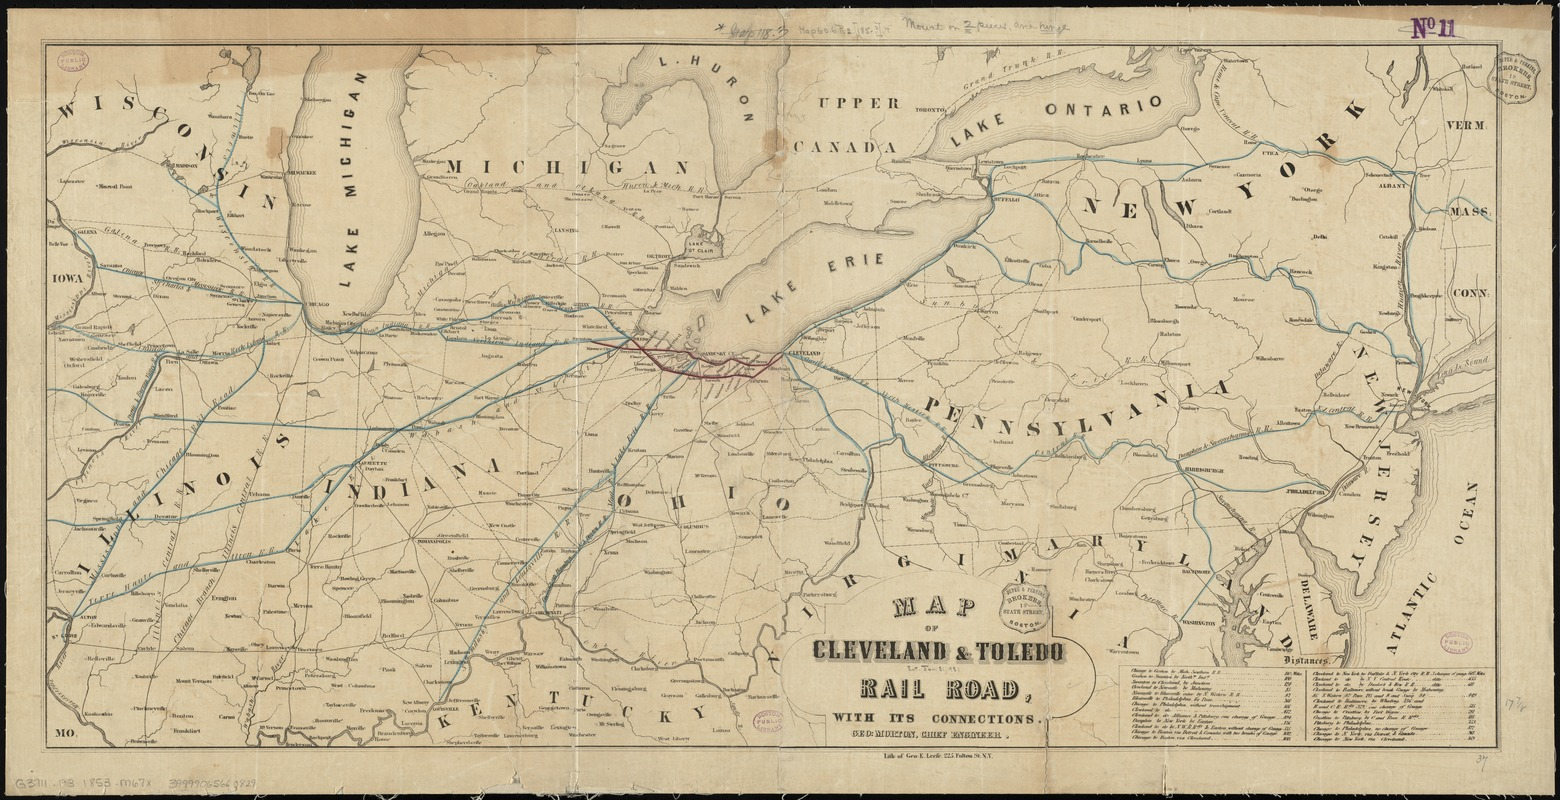 Map of Cleveland & Toledo Rail Road, with its connections